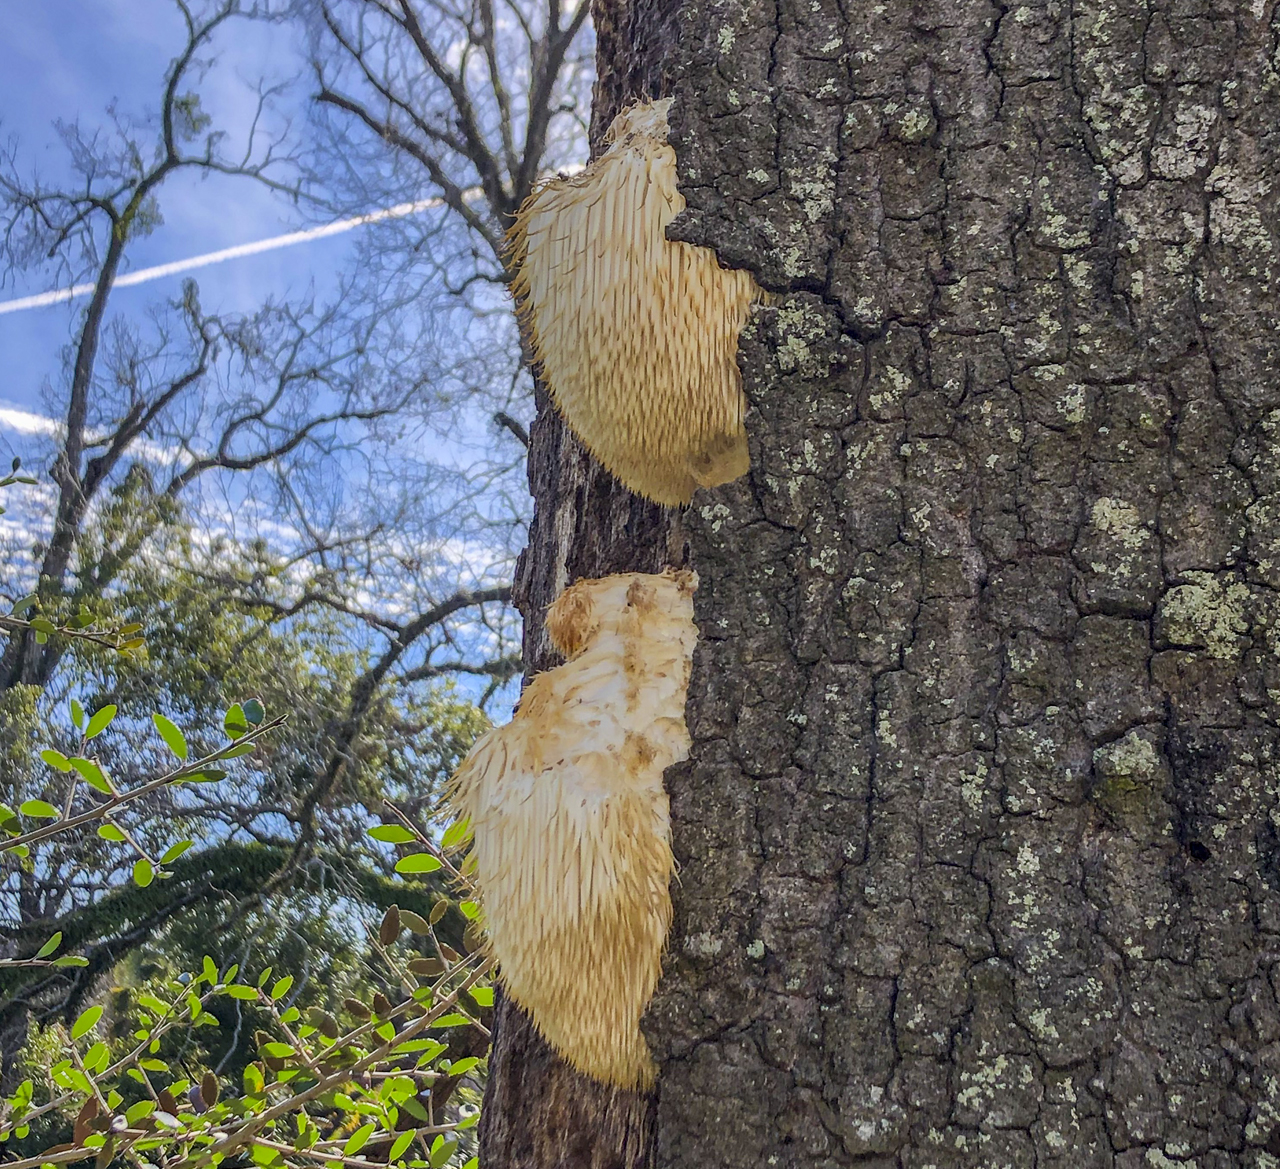 This lion's mane fungus tends to be associated with decay in trees.